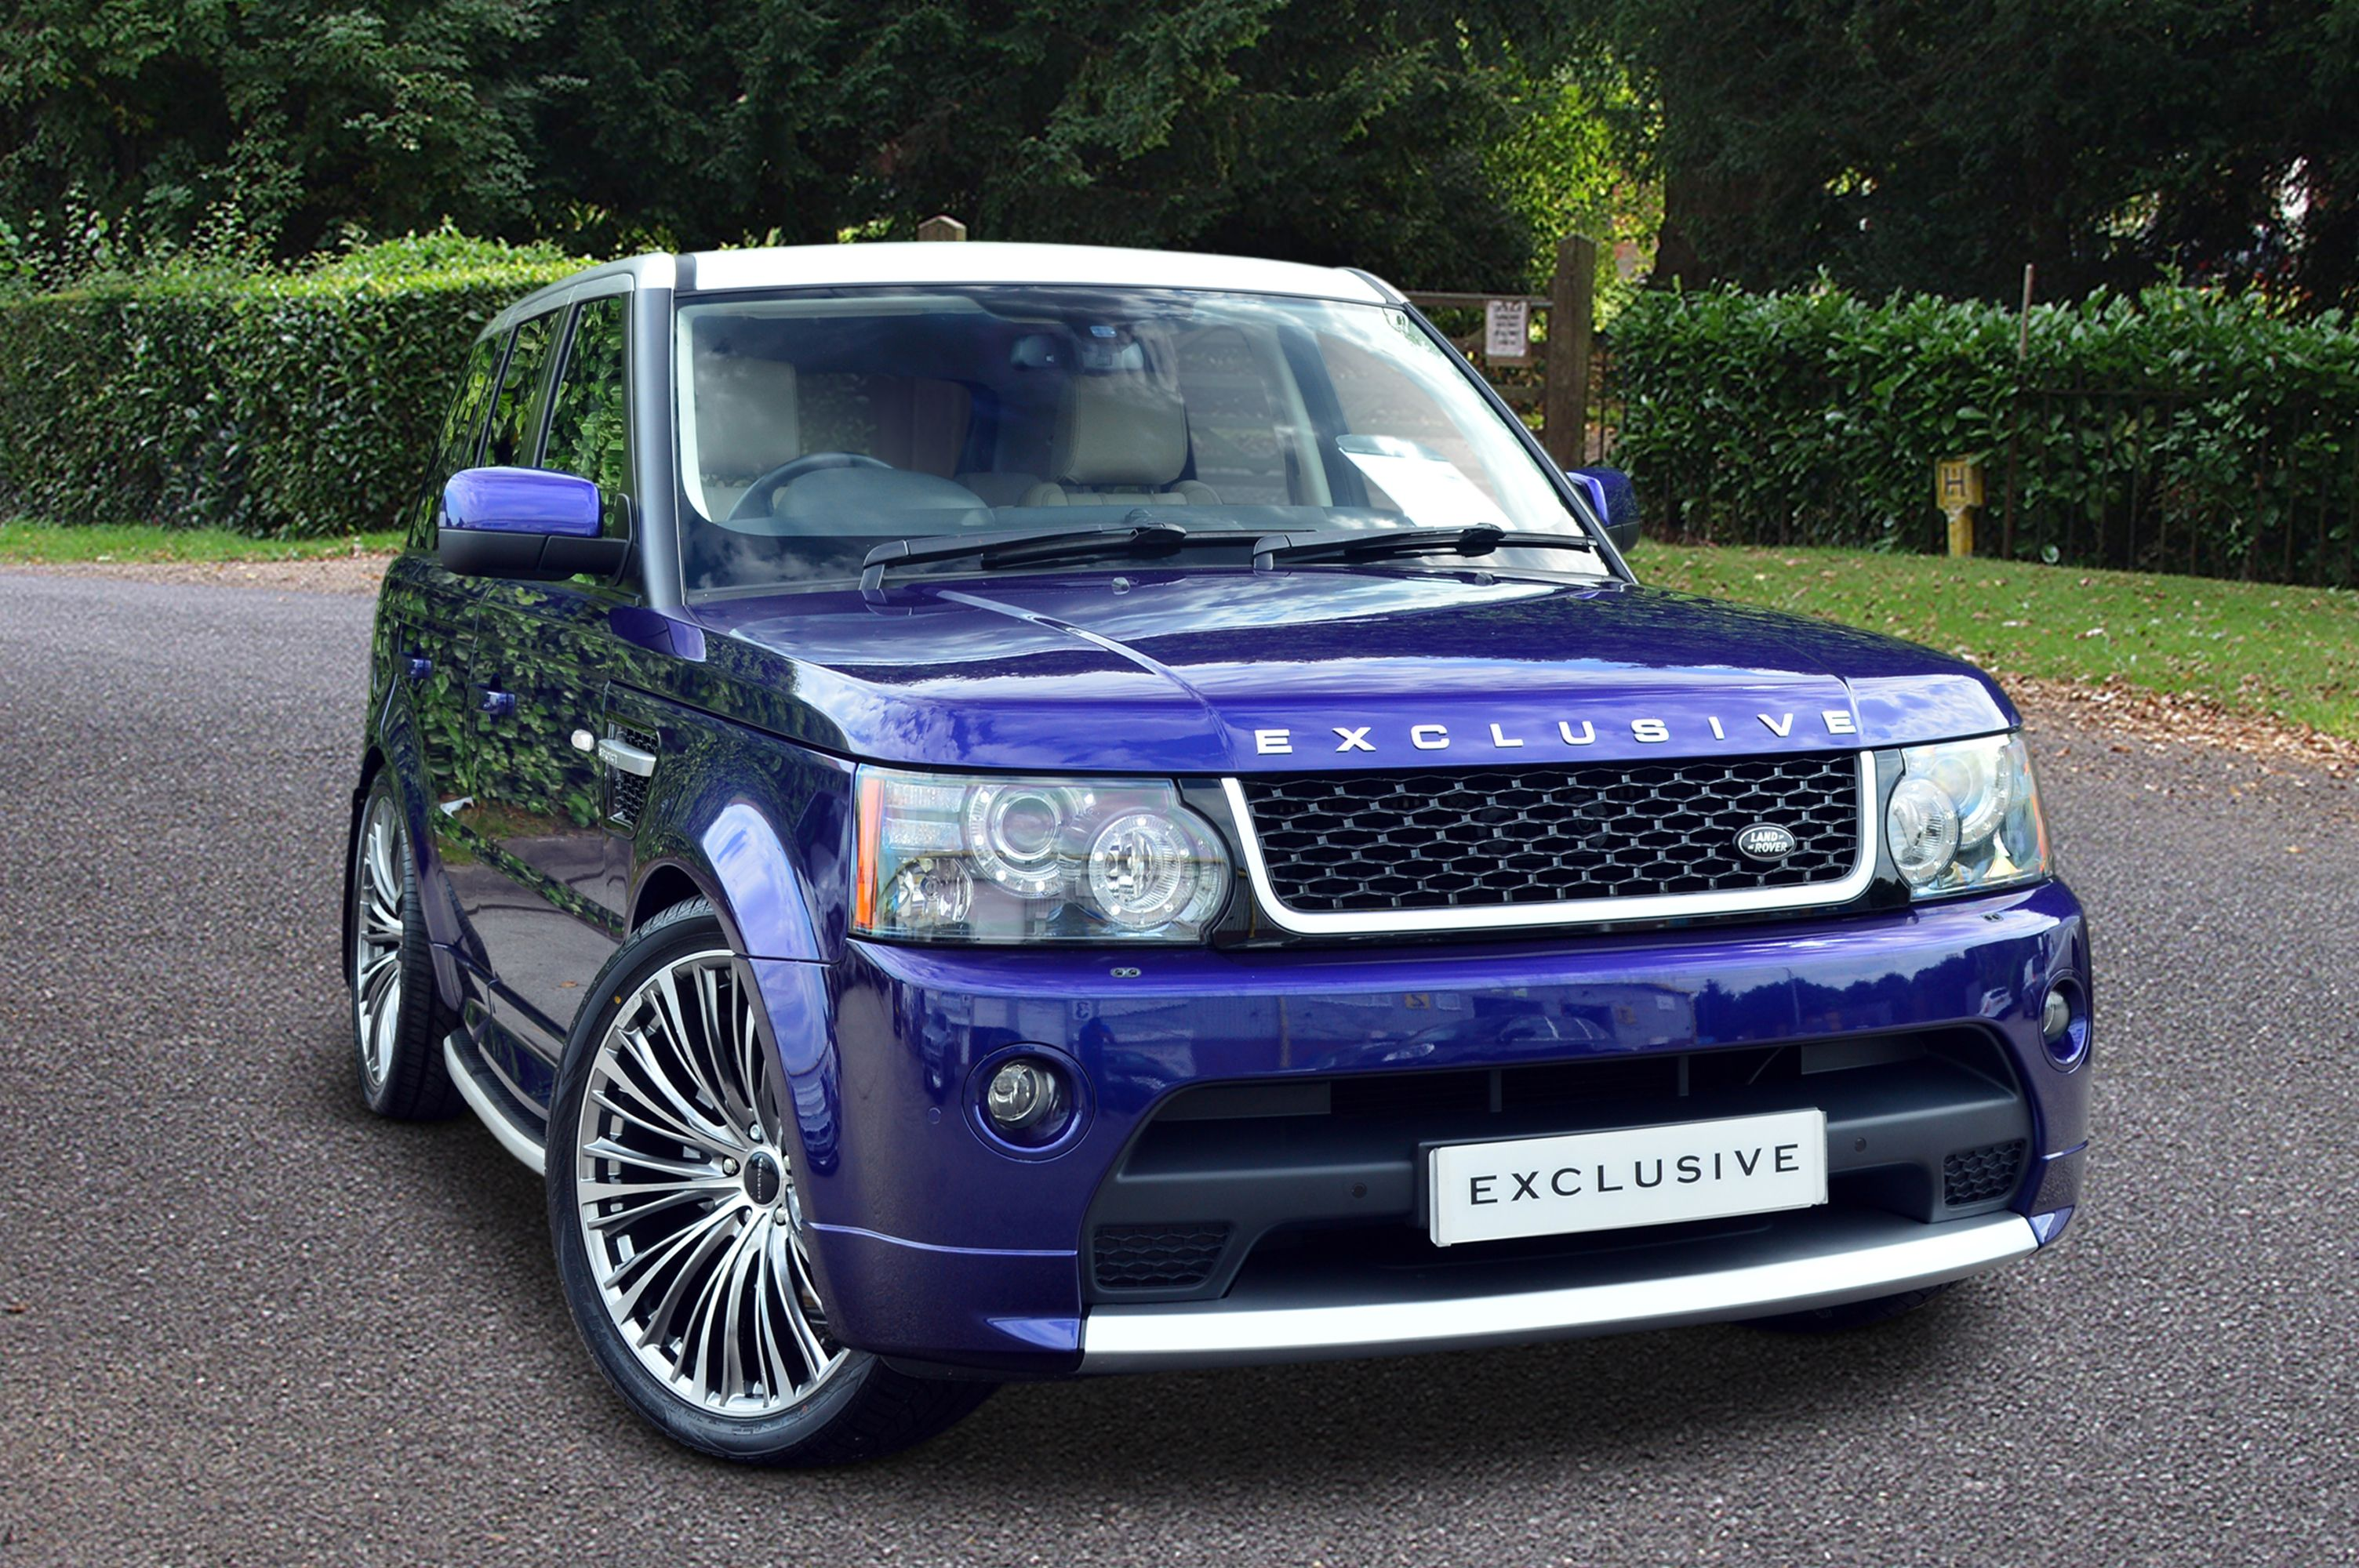 Range Rover Sport finished in a metallic Bali Blue paint